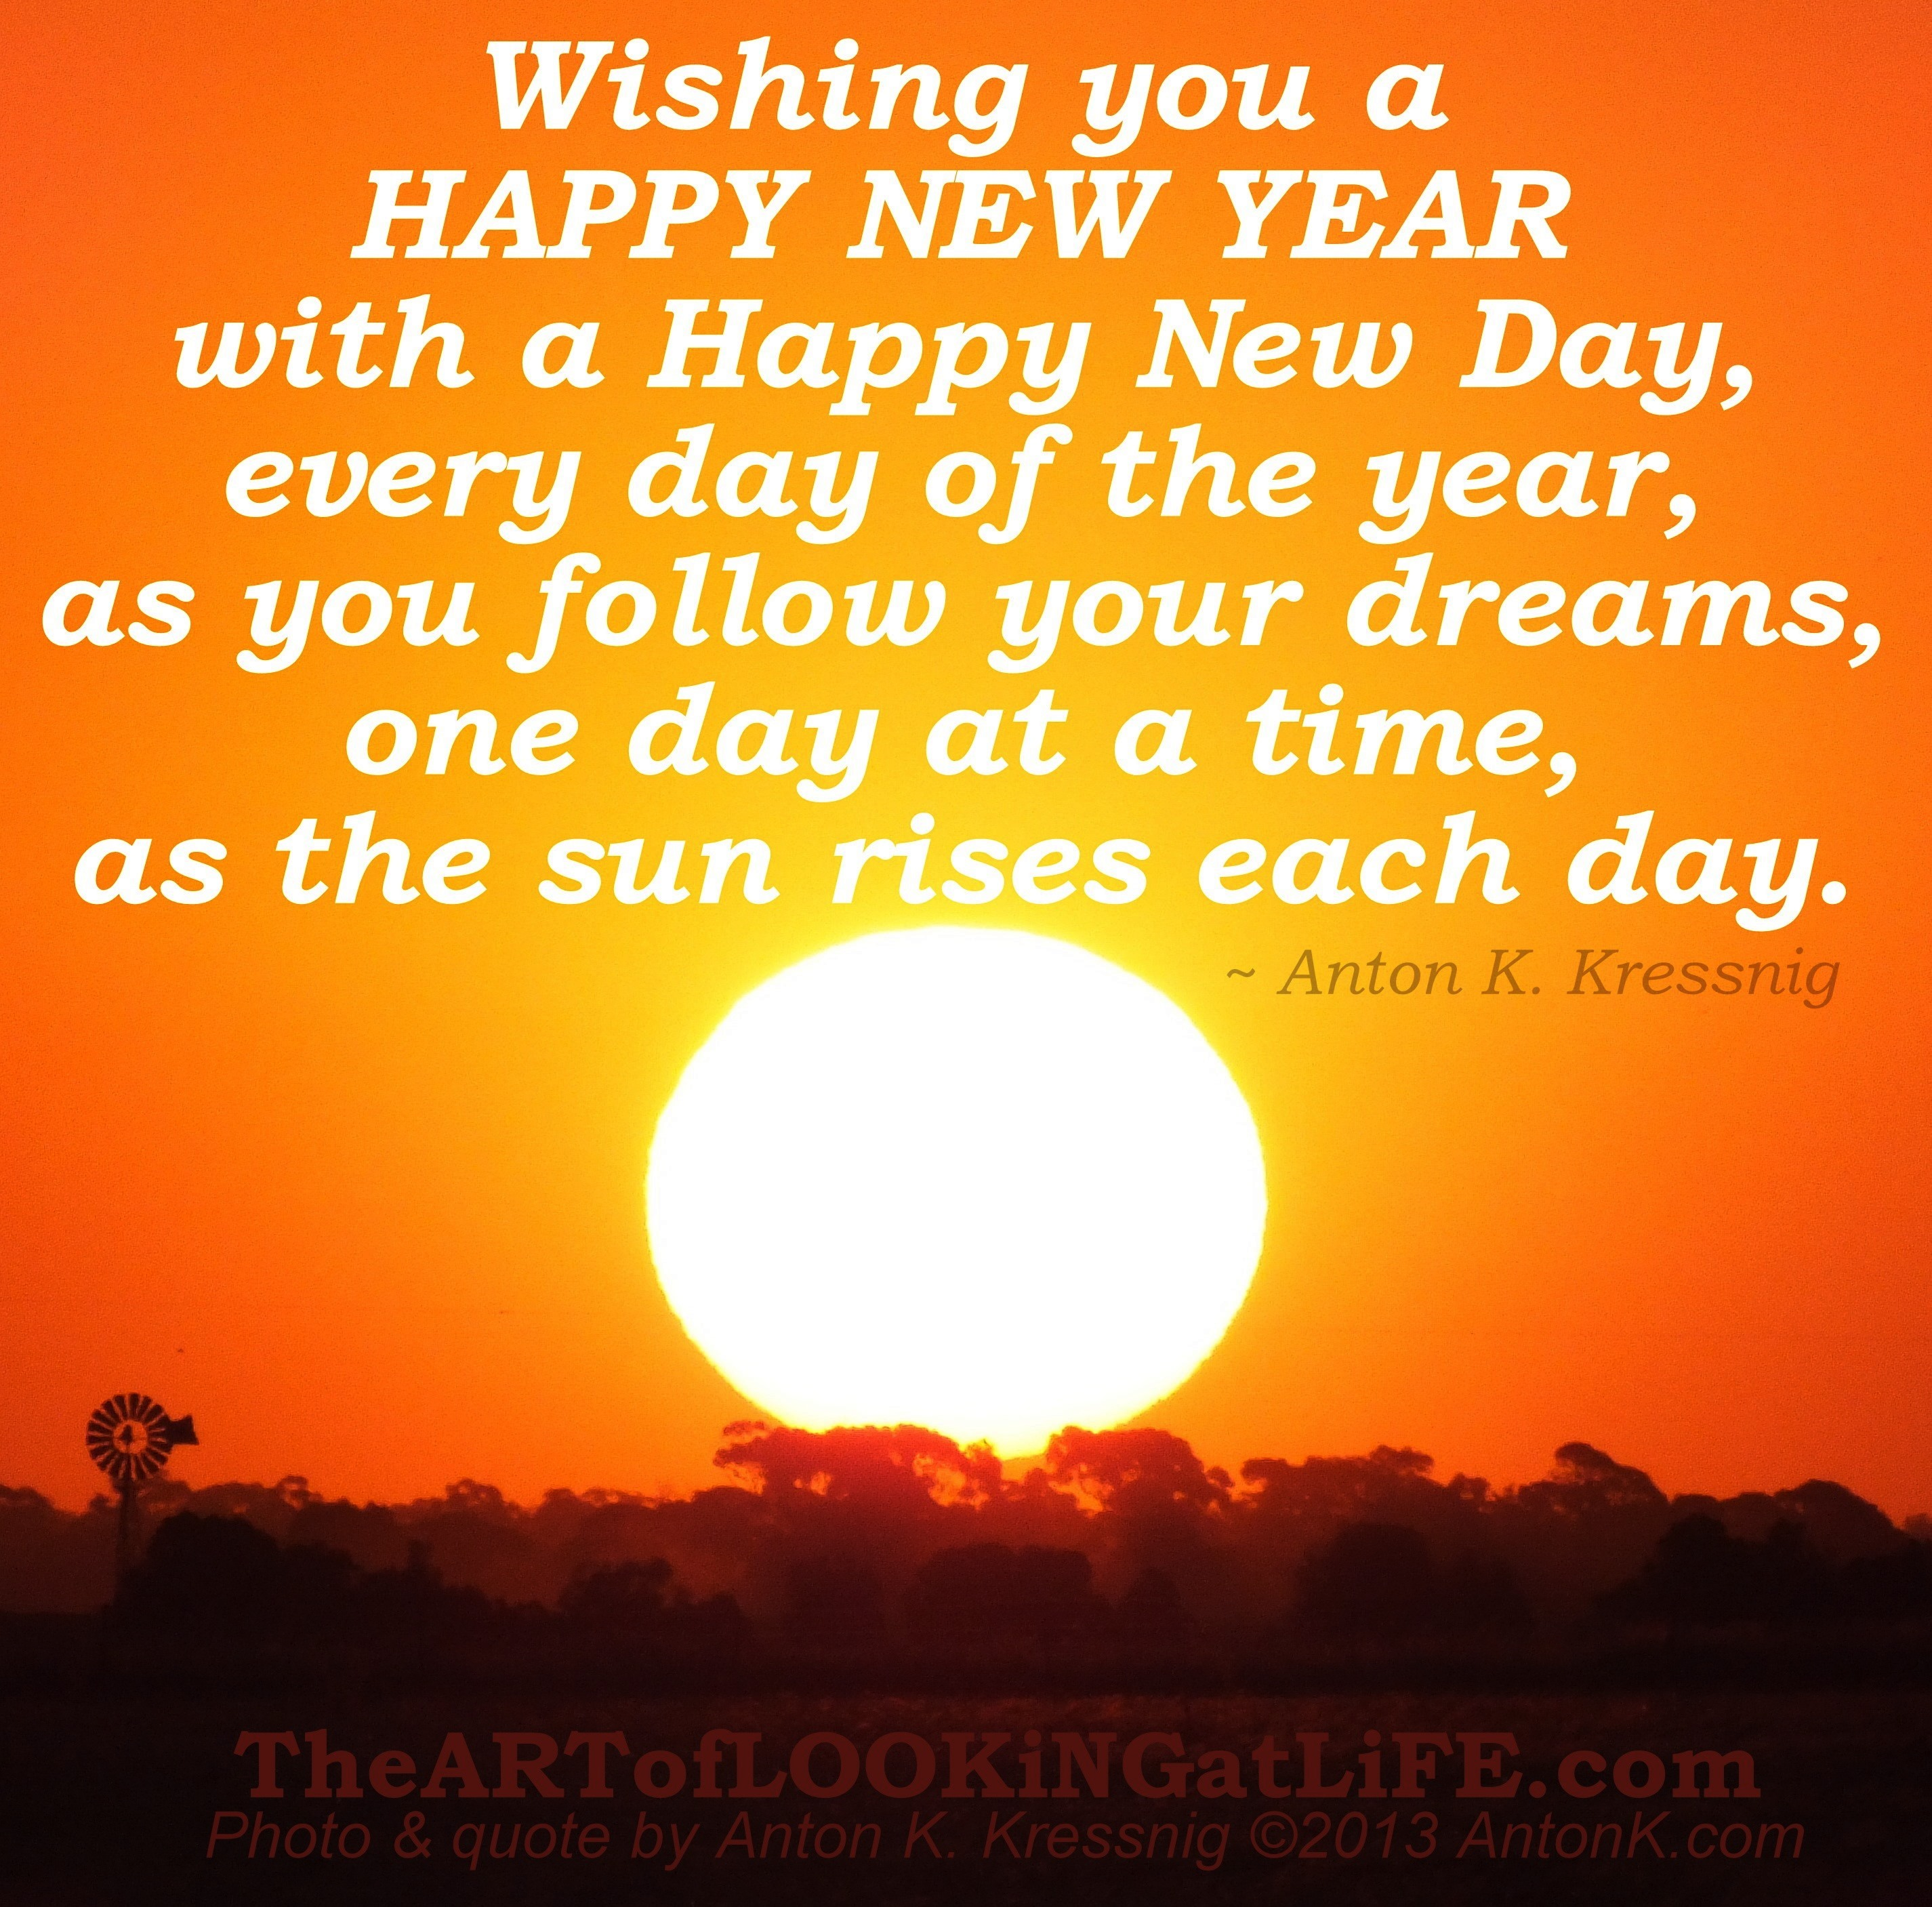 Wishing you Happy New Year Day follow dreams sunrises inspirational message quote meme Australian photo image